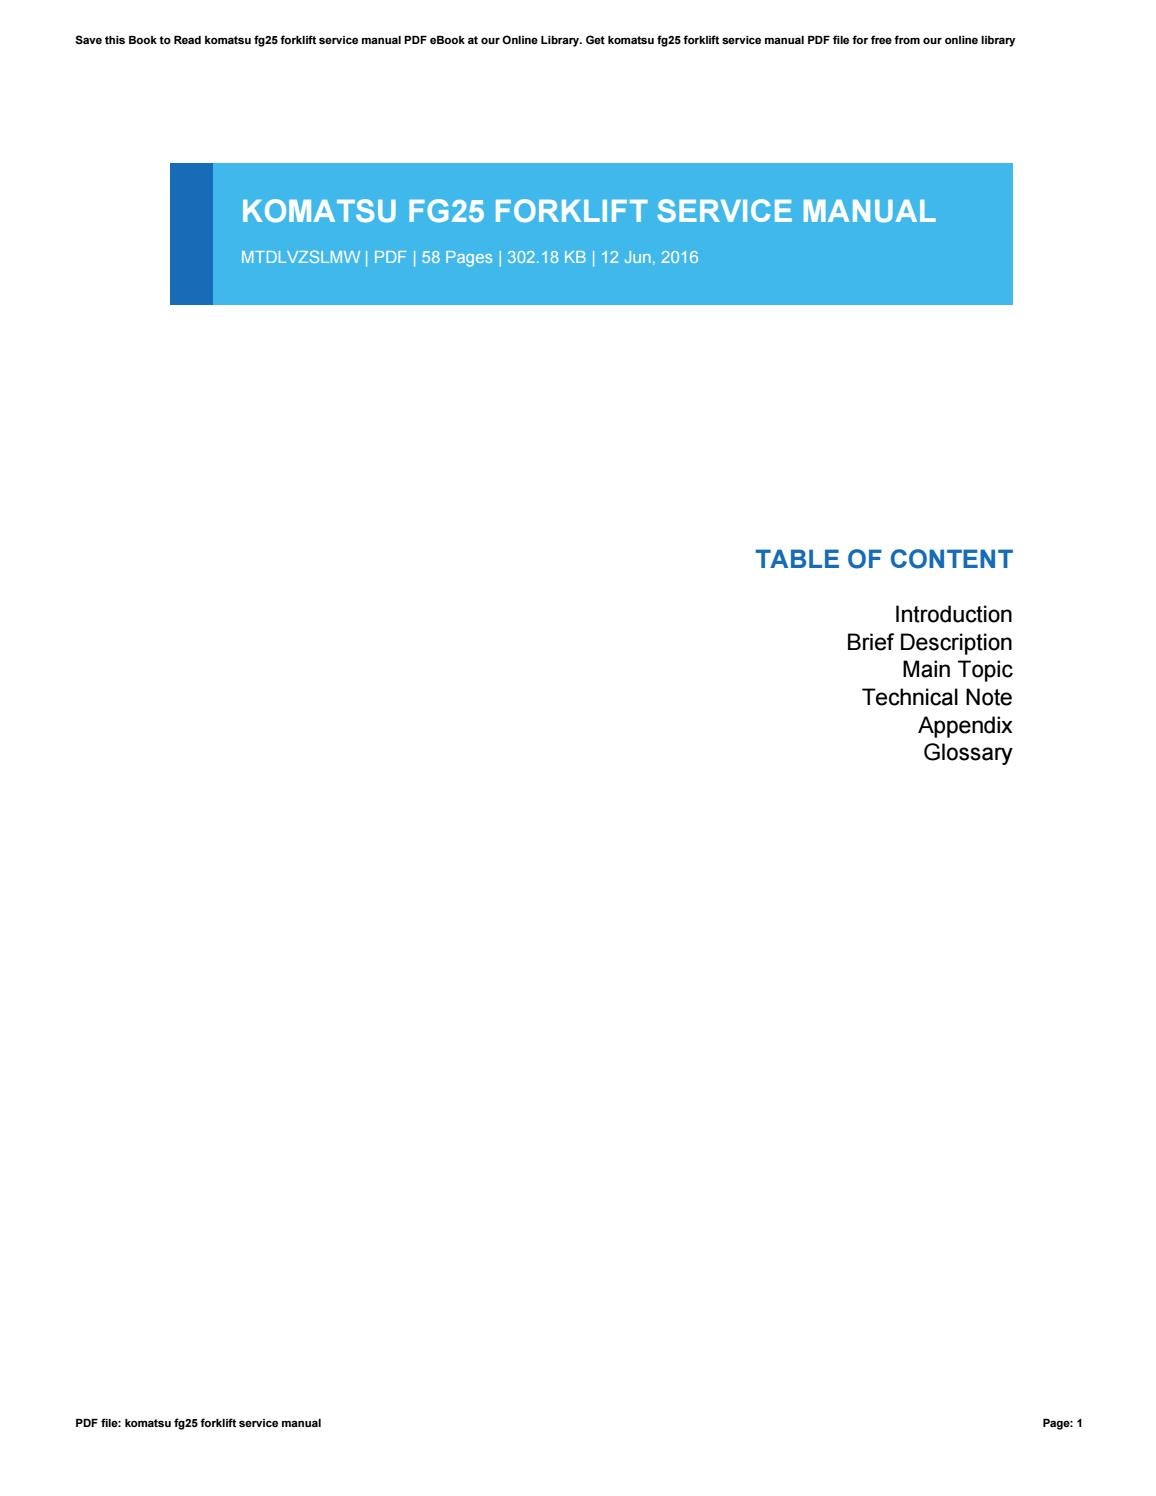 owners manual for komatsu forklift rh owners manual for komatsu forklift tempower us